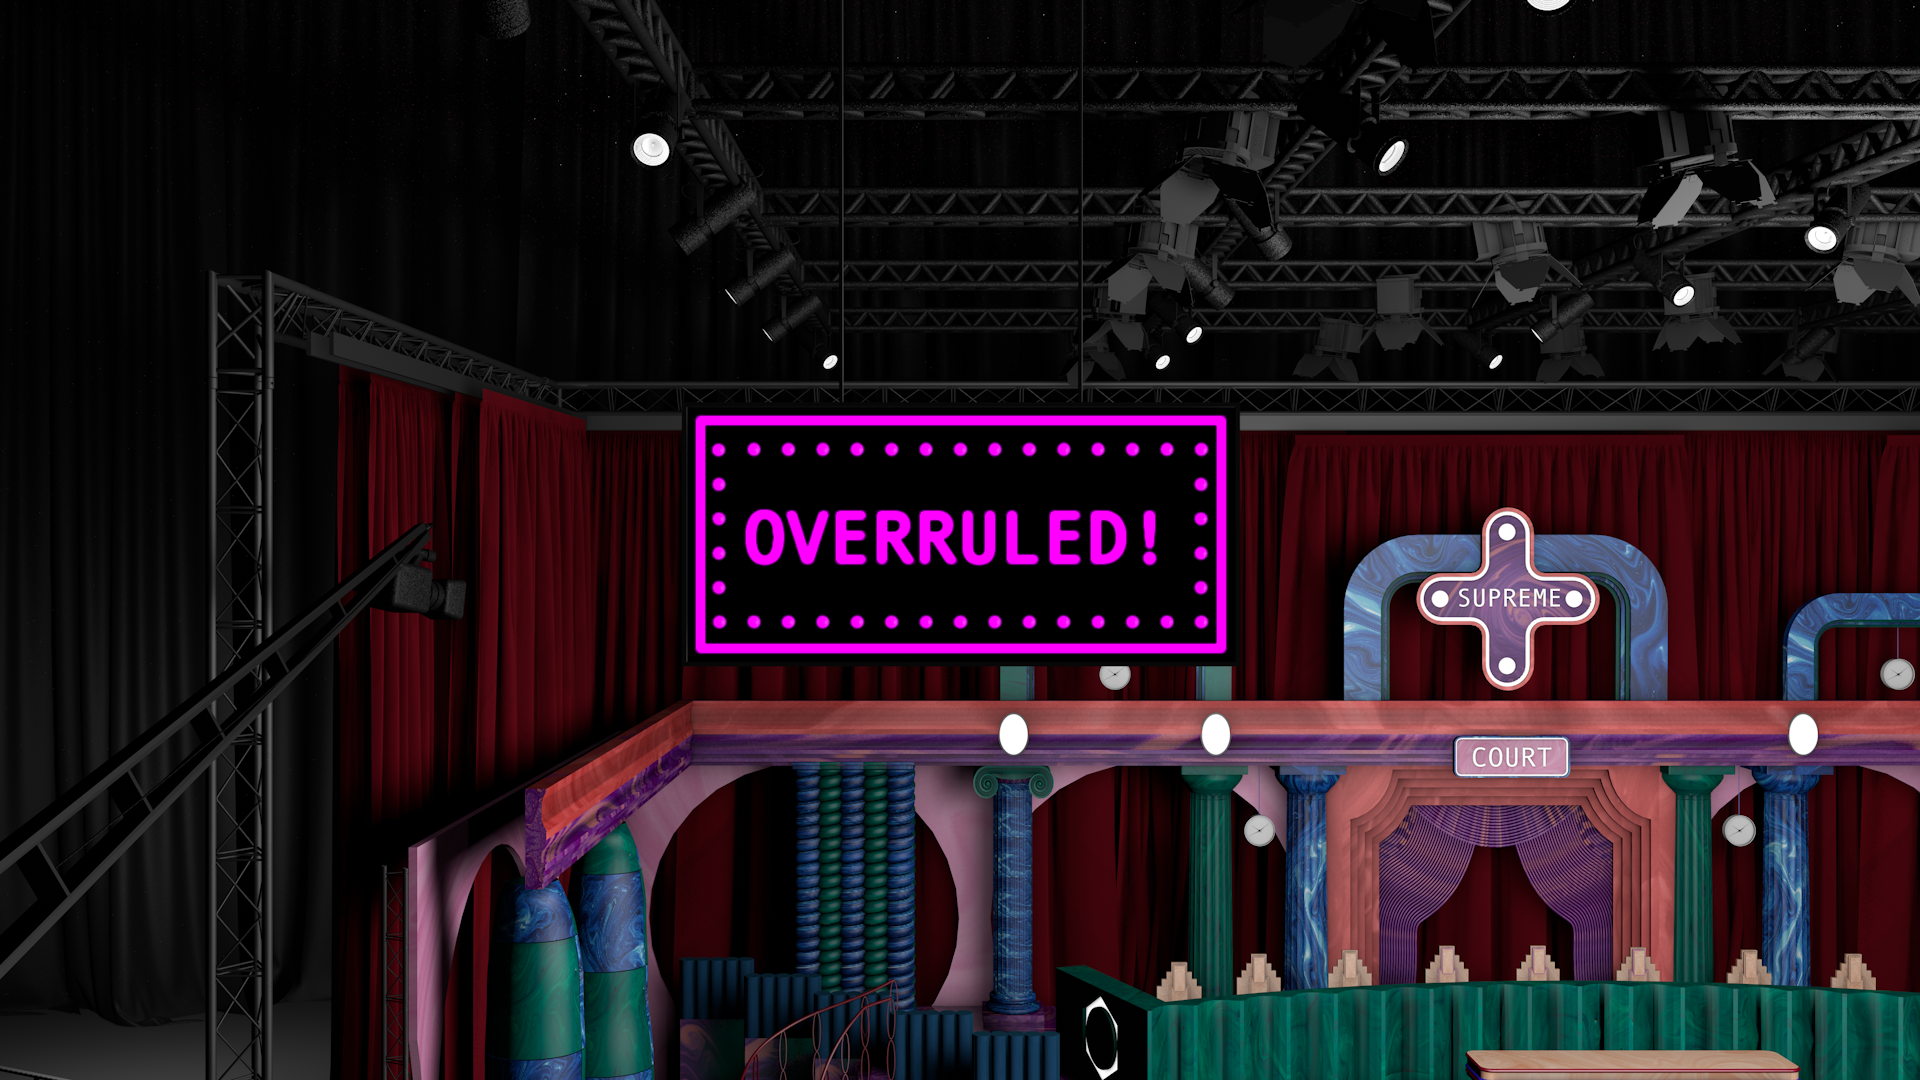 'Overruled!' - a pop catchphrase